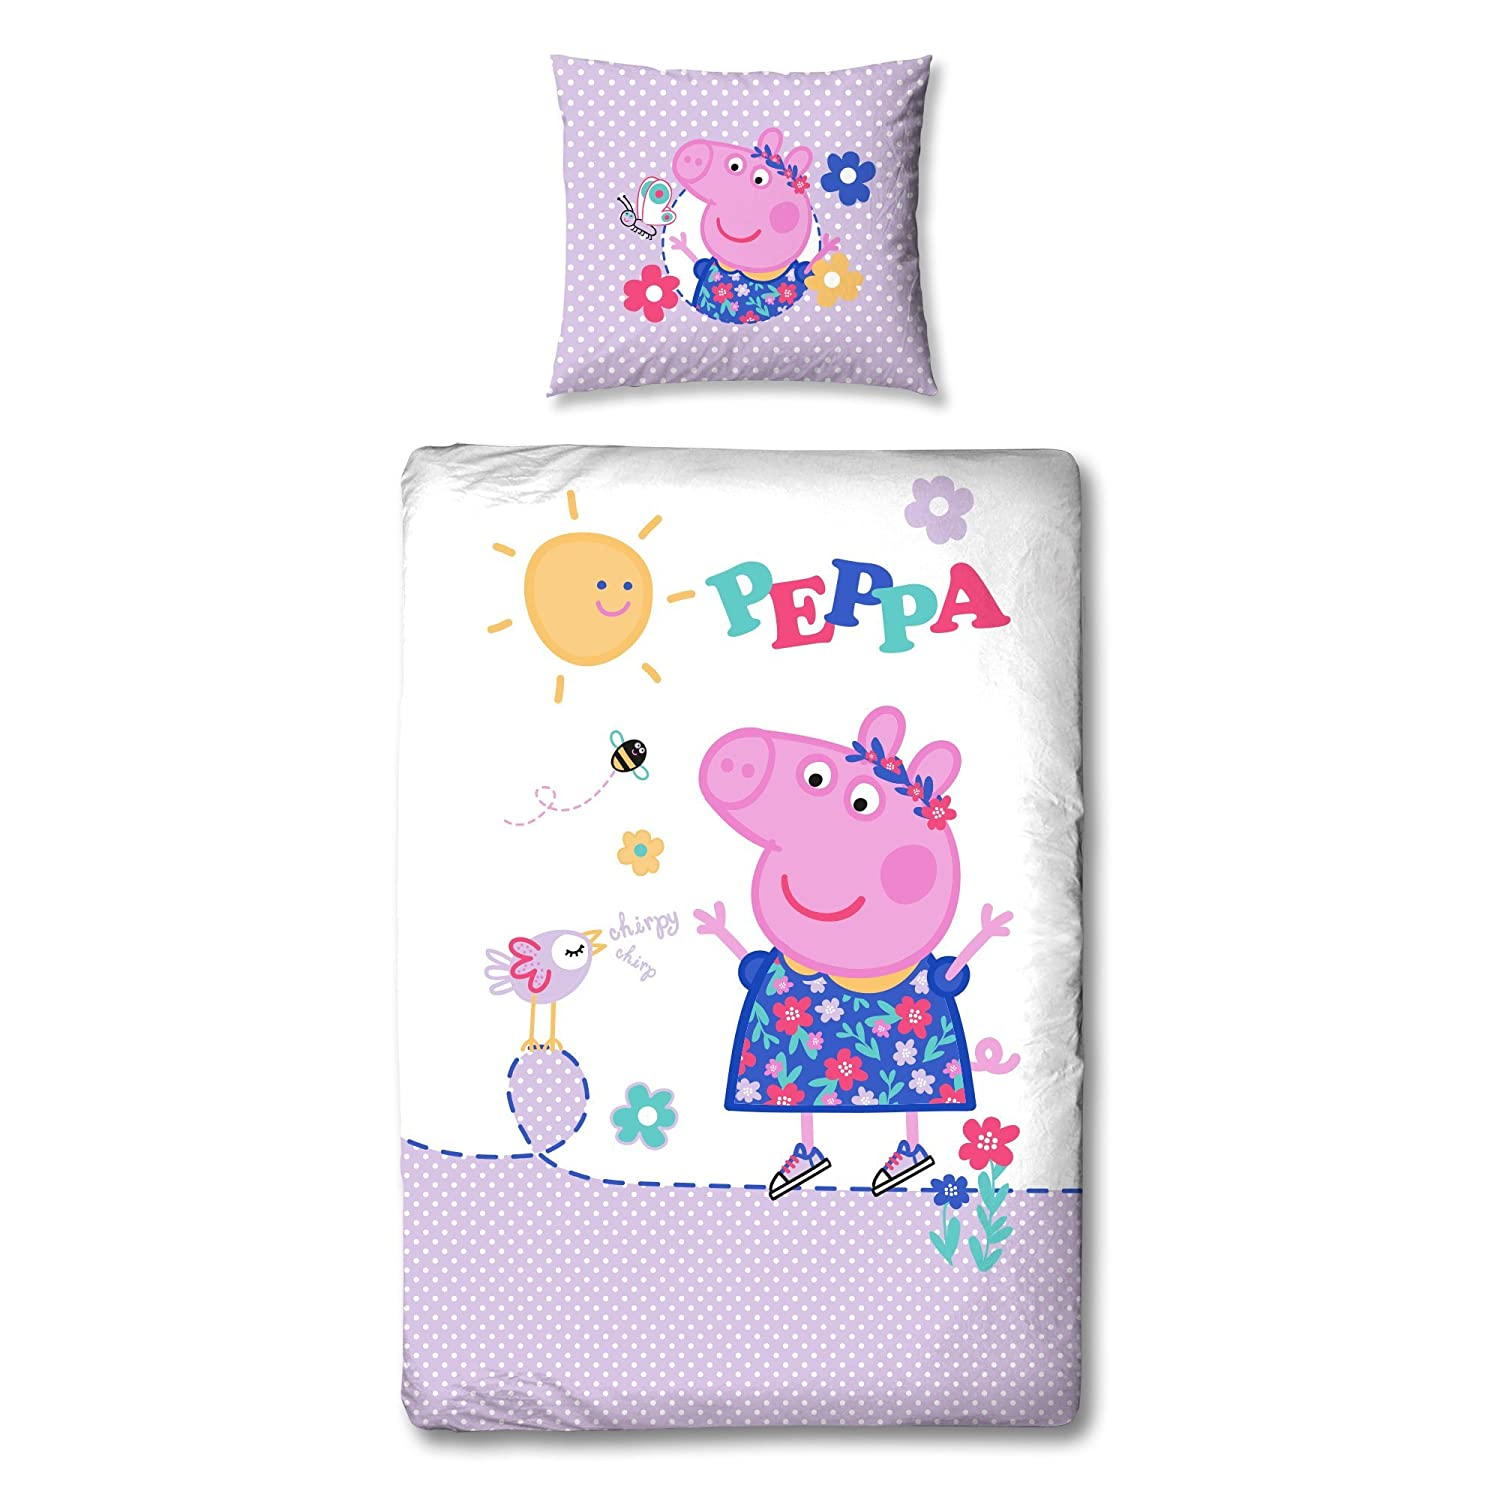 Peppa Pig Flannel Bed Linen Reversible - Design Chipy – Pillowcase 31, 5 inch x 31, 5 inch - Duvet Cover 53, 15 inch x 78, 74 inch - 100% Cotton - (german standard size) BERONAGE